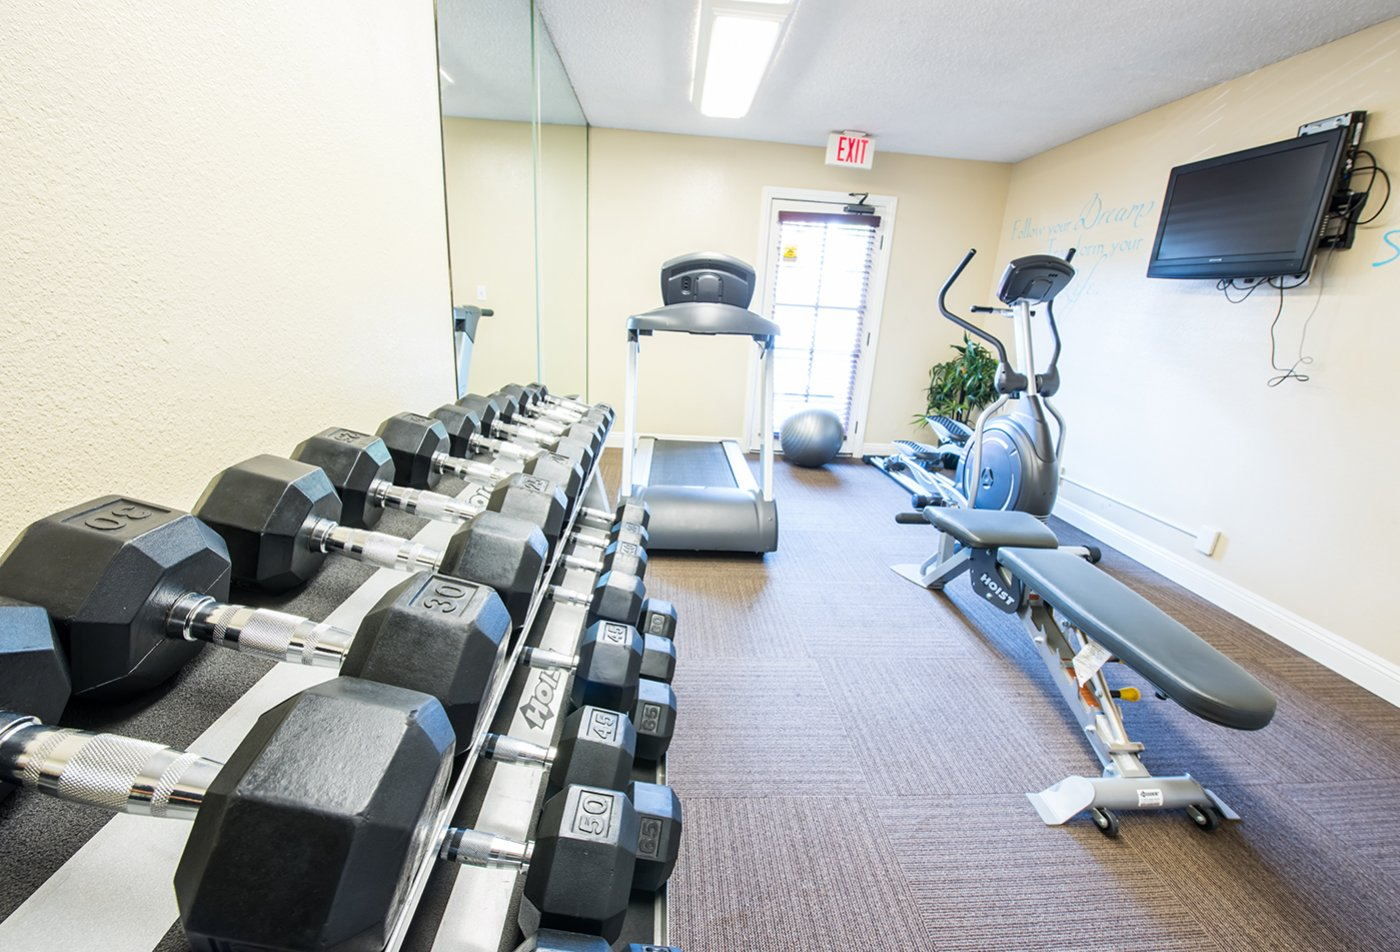 Cutting Edge Fitness Center | Apartments Homes for rent in Riverside, CA | Laurel Heights